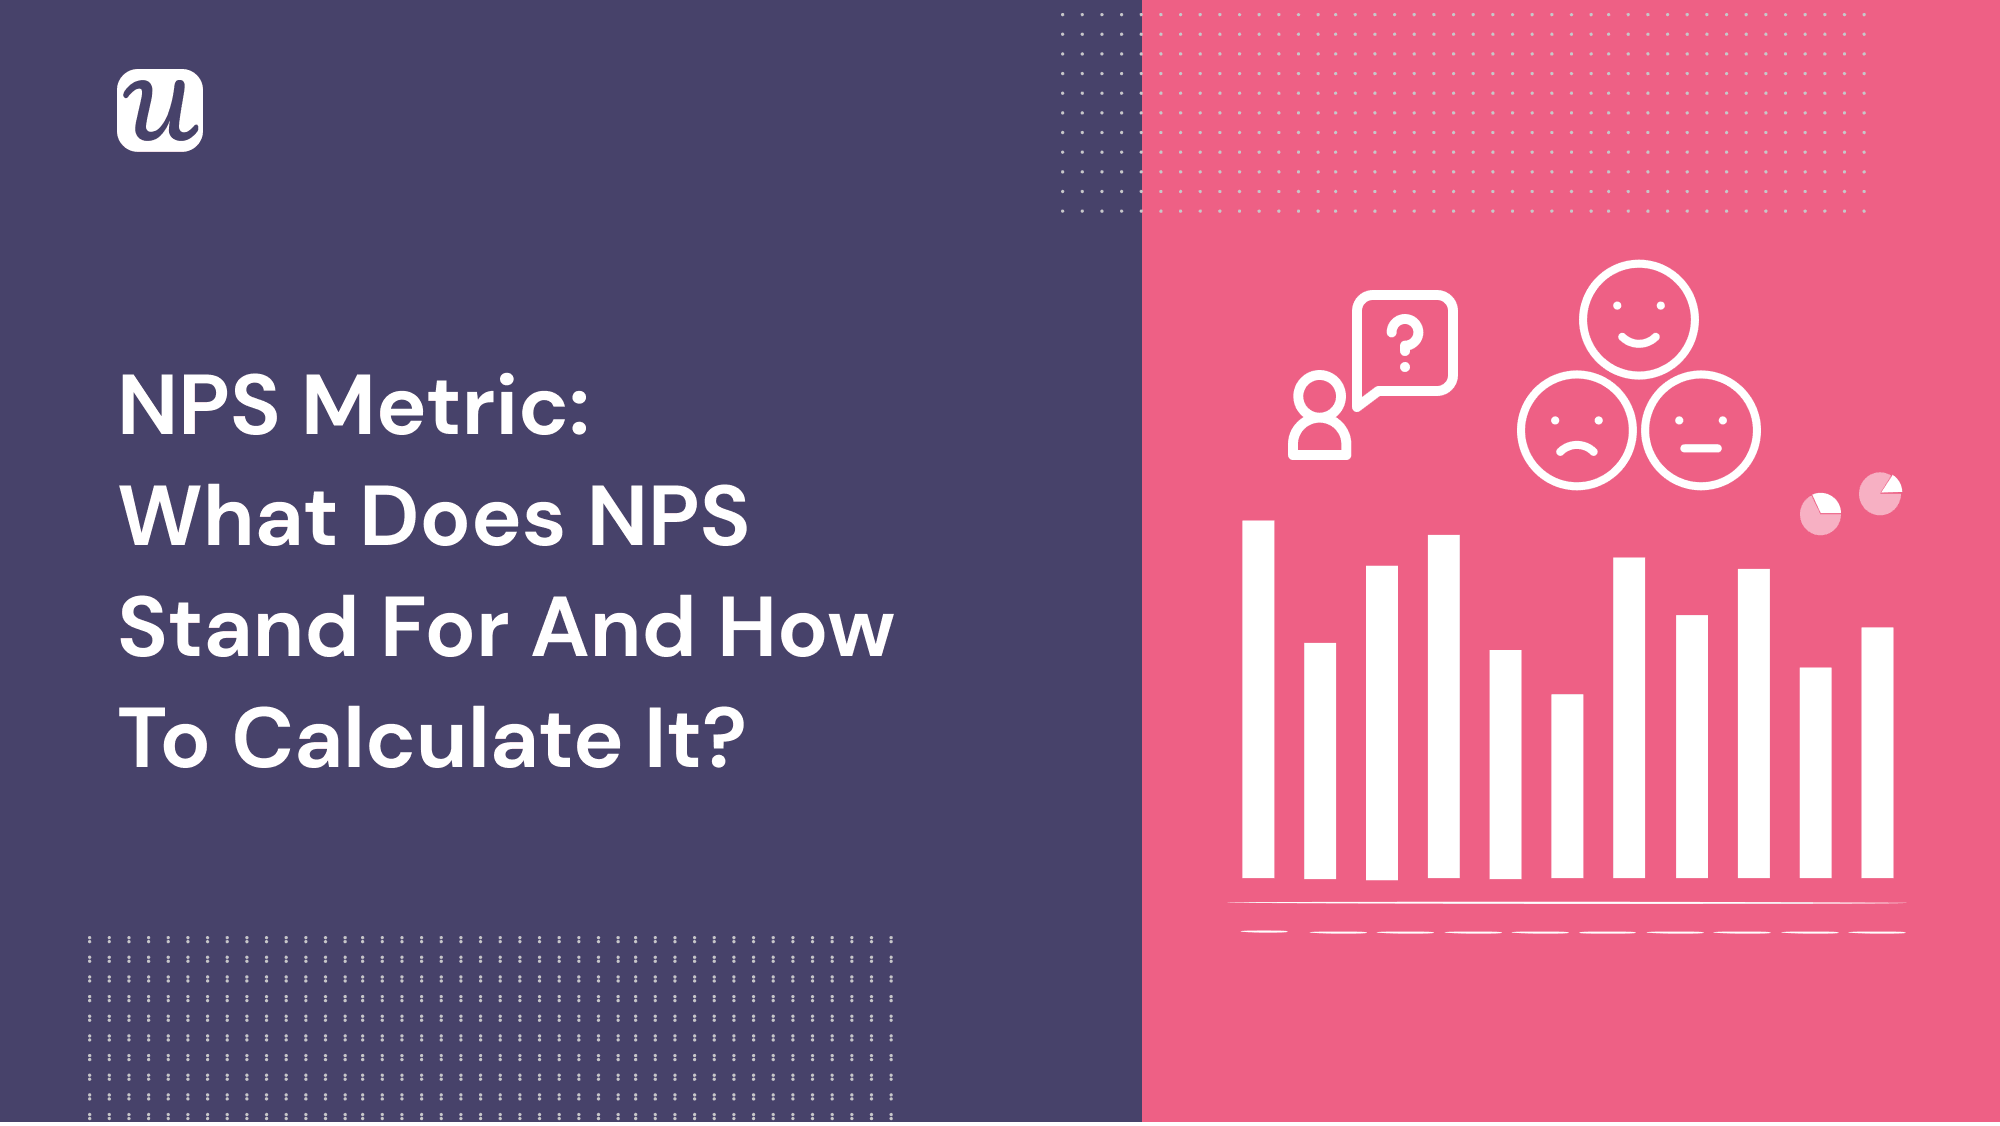 NPS Metric: What Does NPS Stand For And How To Calculate It?